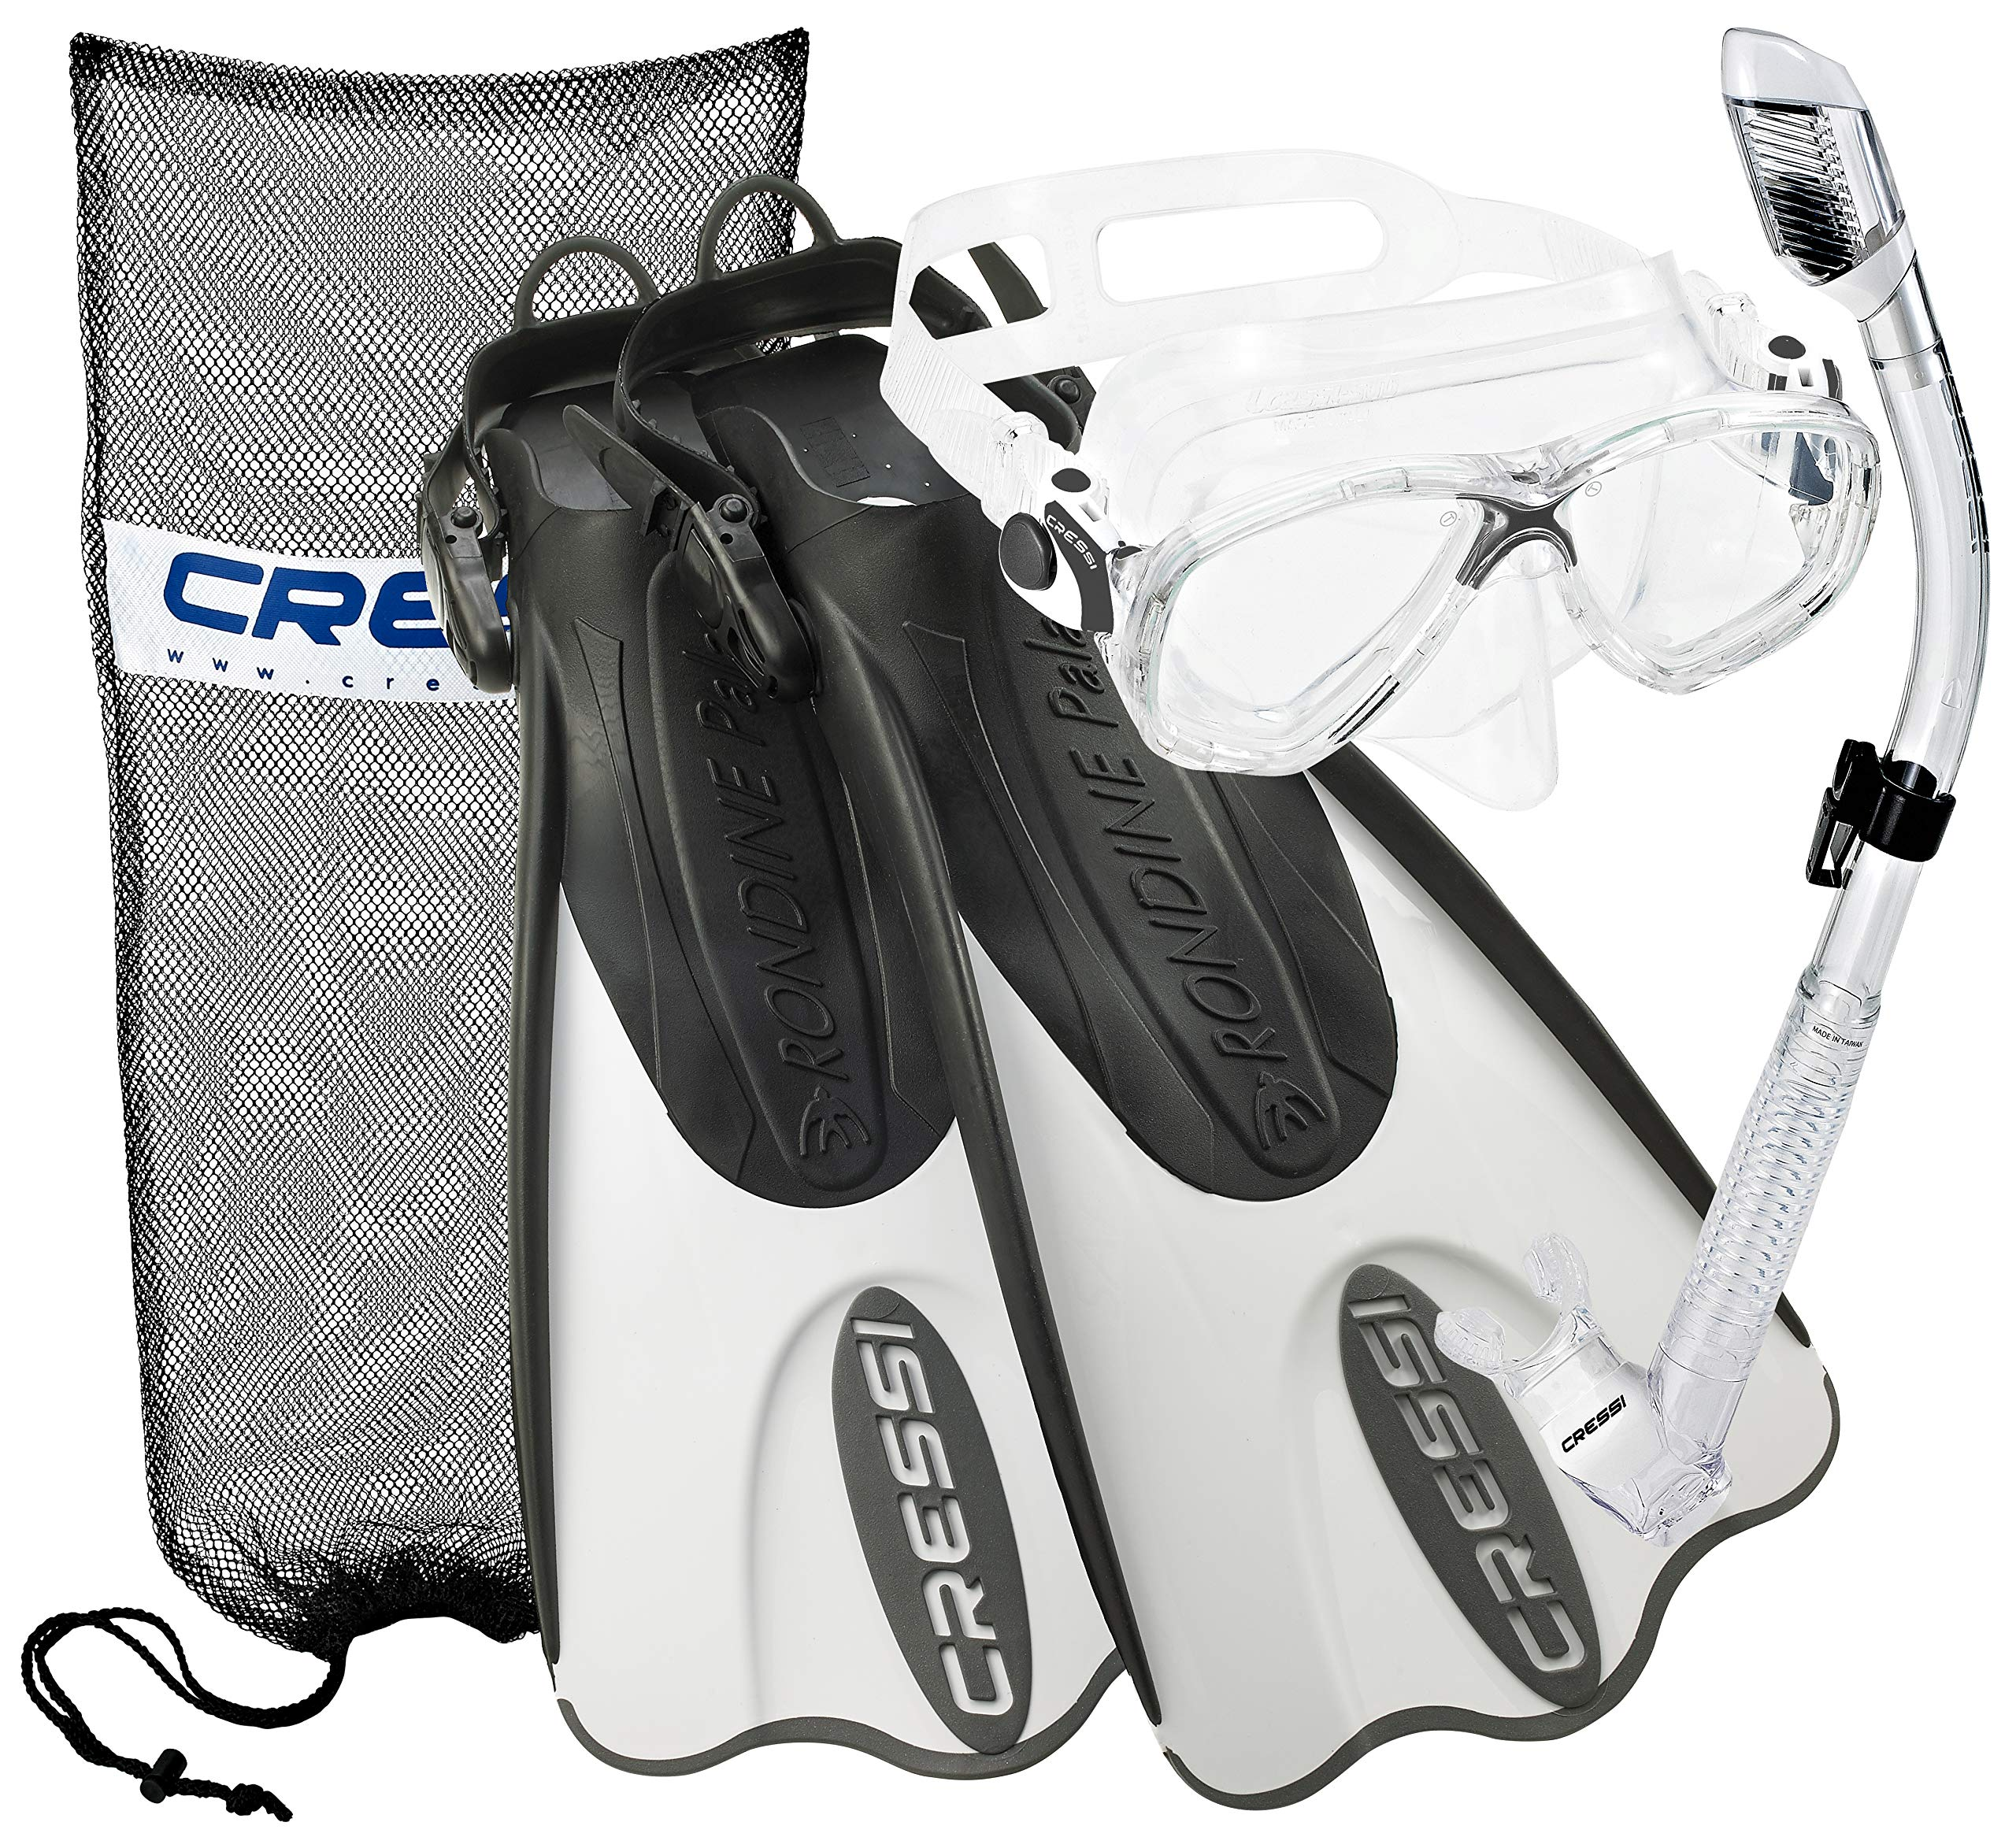 Cressi Palau Mask Fin Snorkel Set with Snorkeling Gear Bag, Designed and Manufactured in Italy (Black White, S/M | (Mens 4-7) (Womens 5-8))